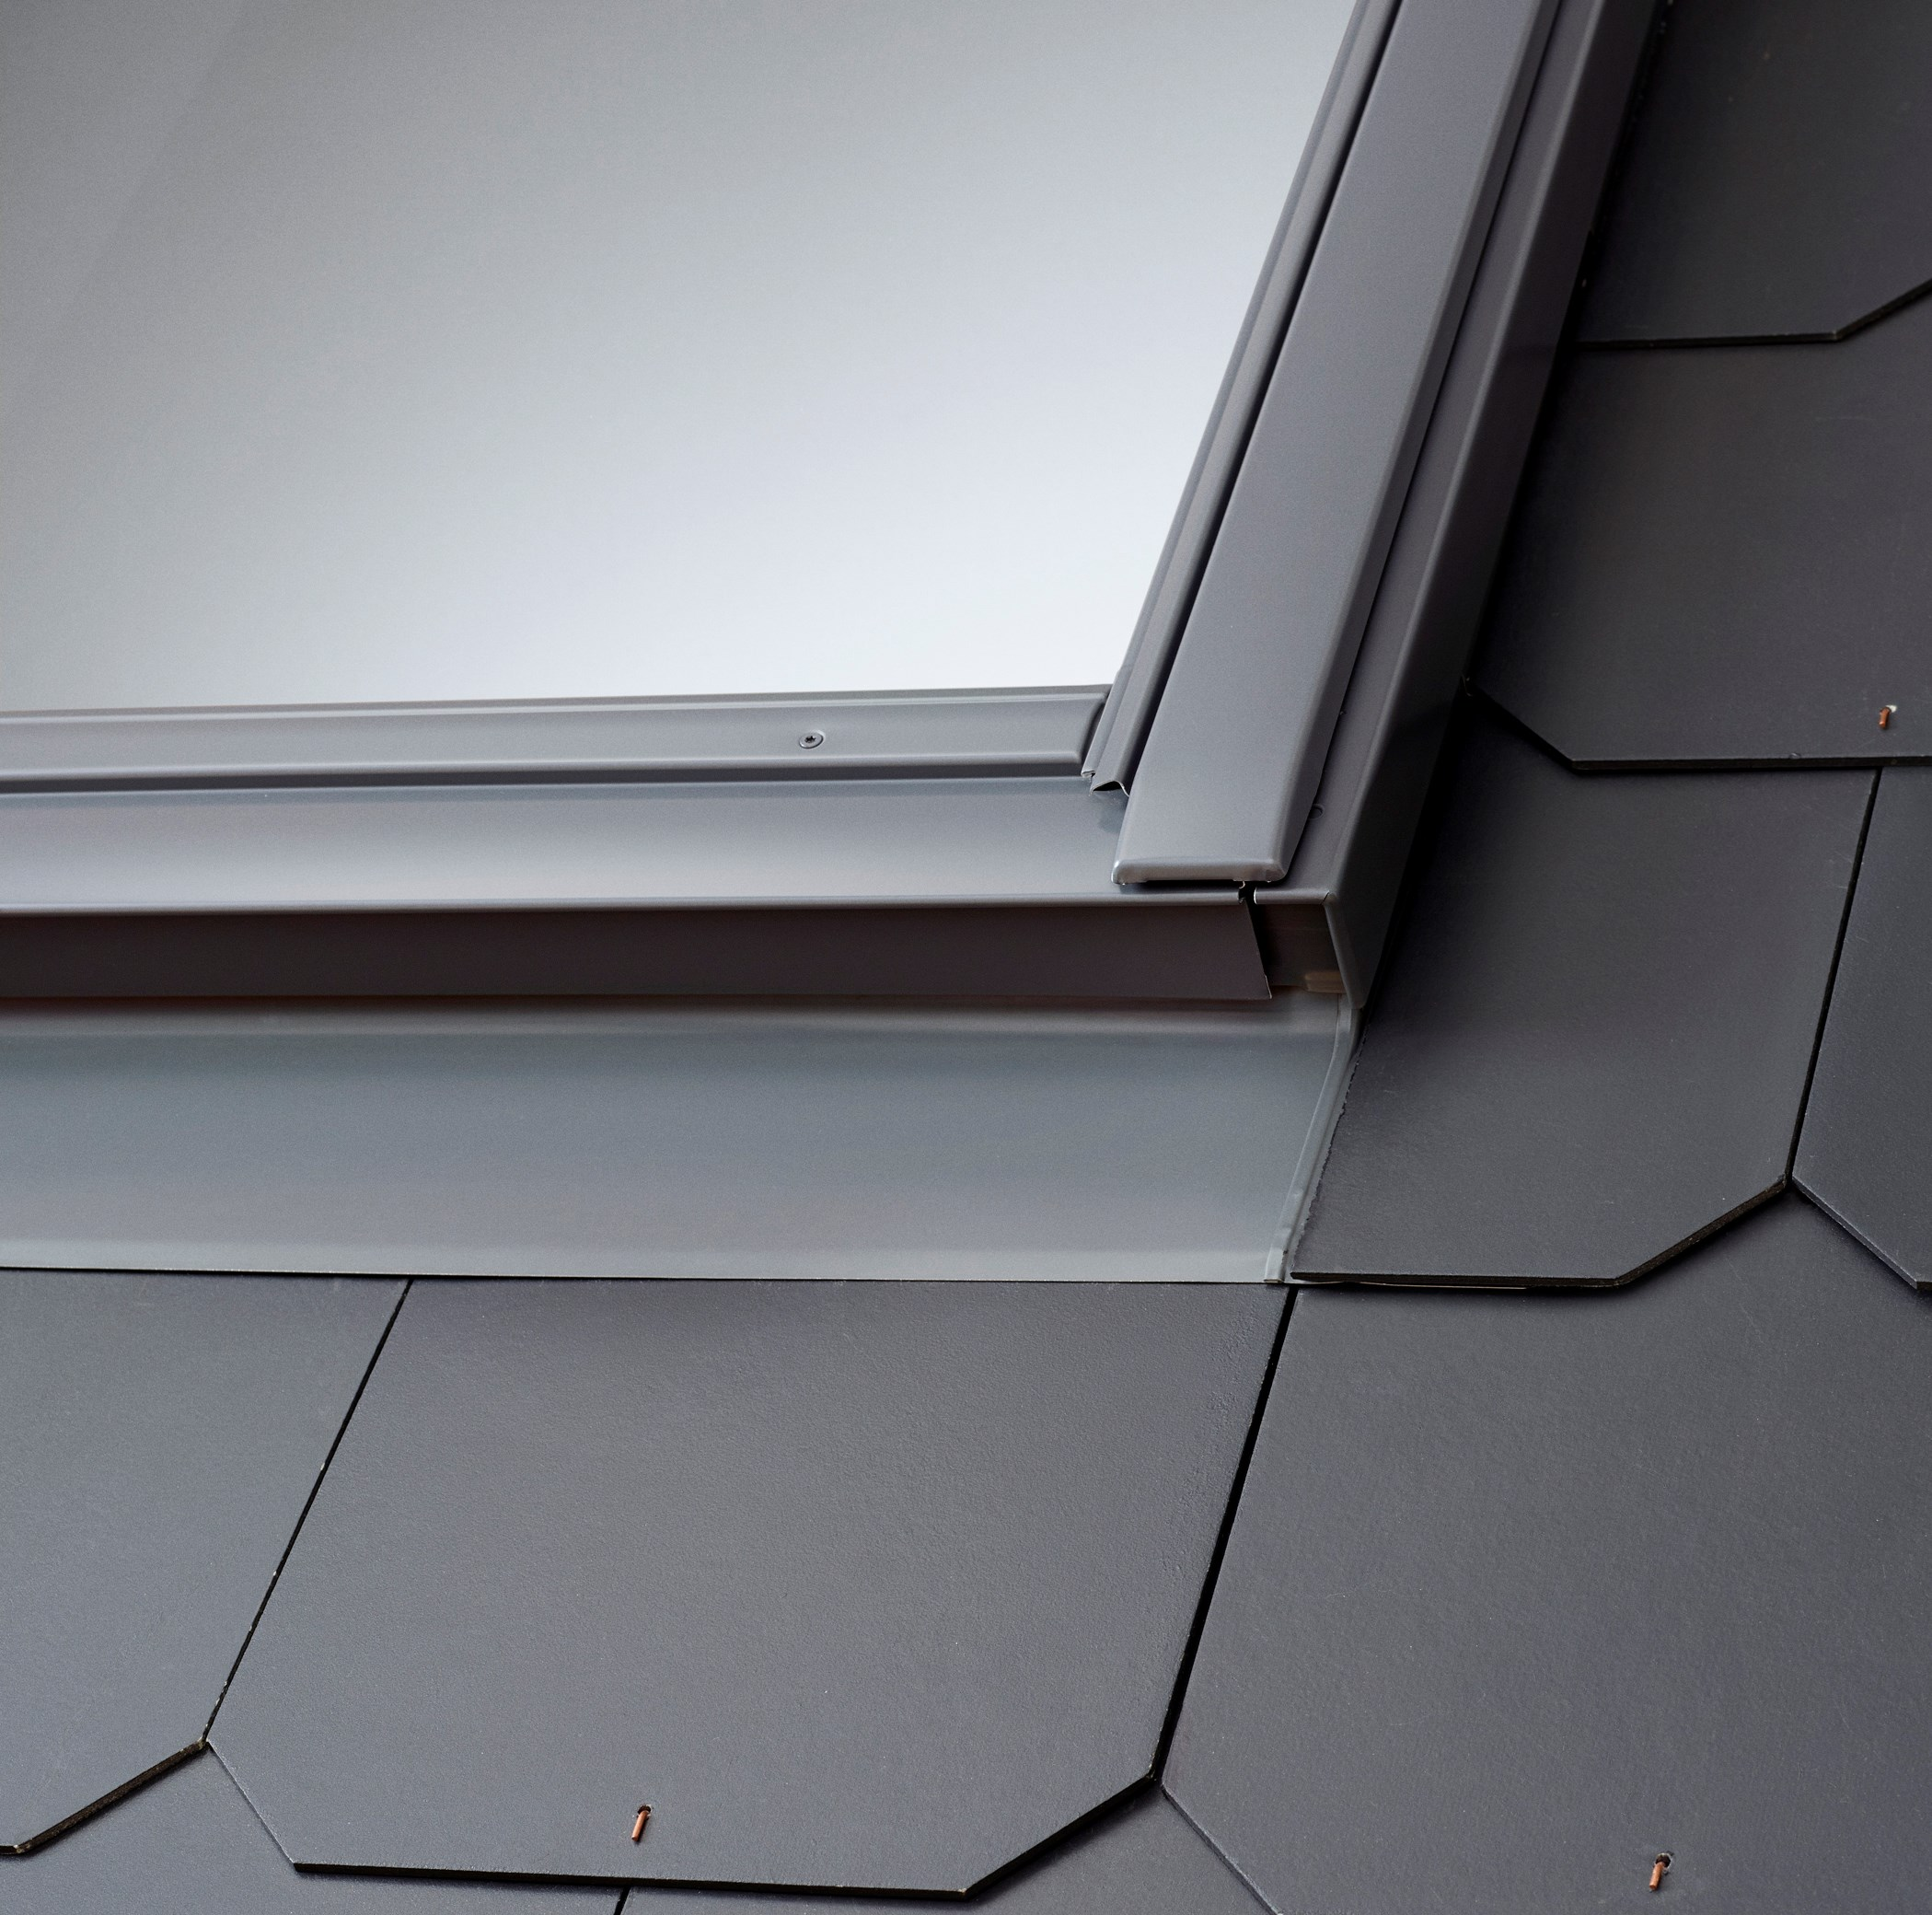 Velux roof window slate flashing edl 0000 flashing for How to clean velux skylights